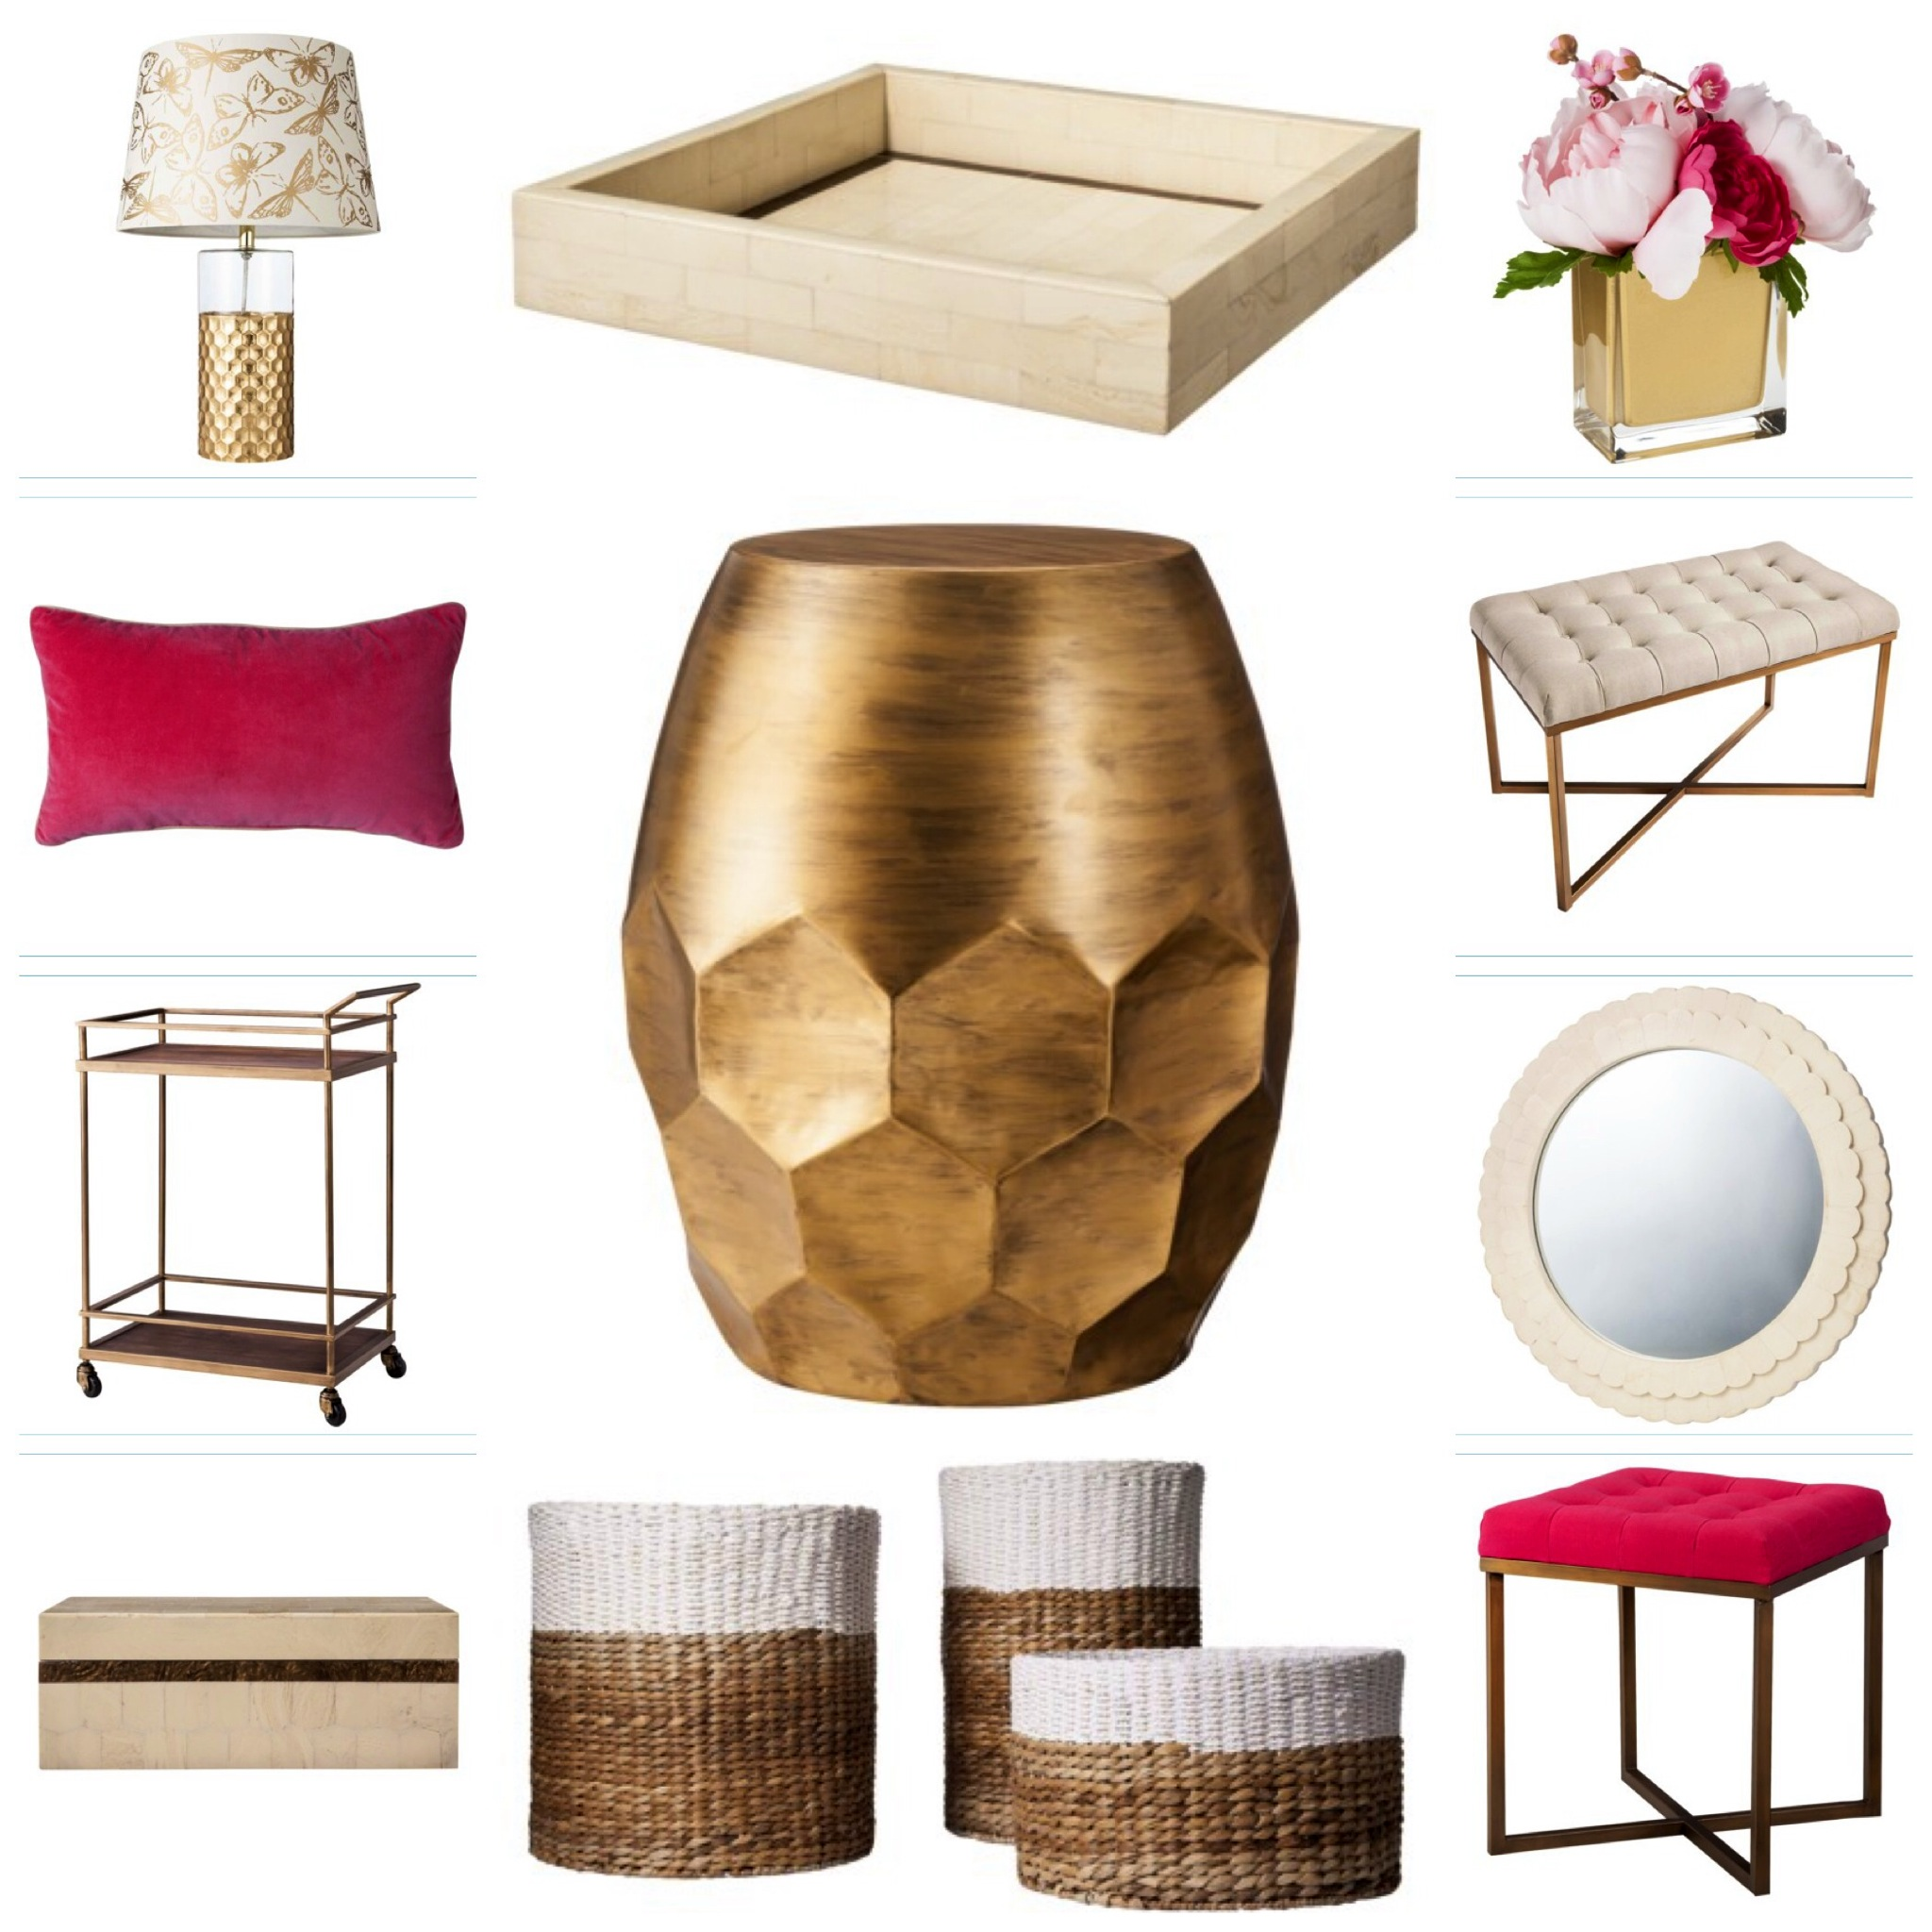 what your threshold new spring collection for target out scalloped accent table honeycomb gold foiled lamp with butterfly shade faux shell inlay tray ranuculus peony vase tufted